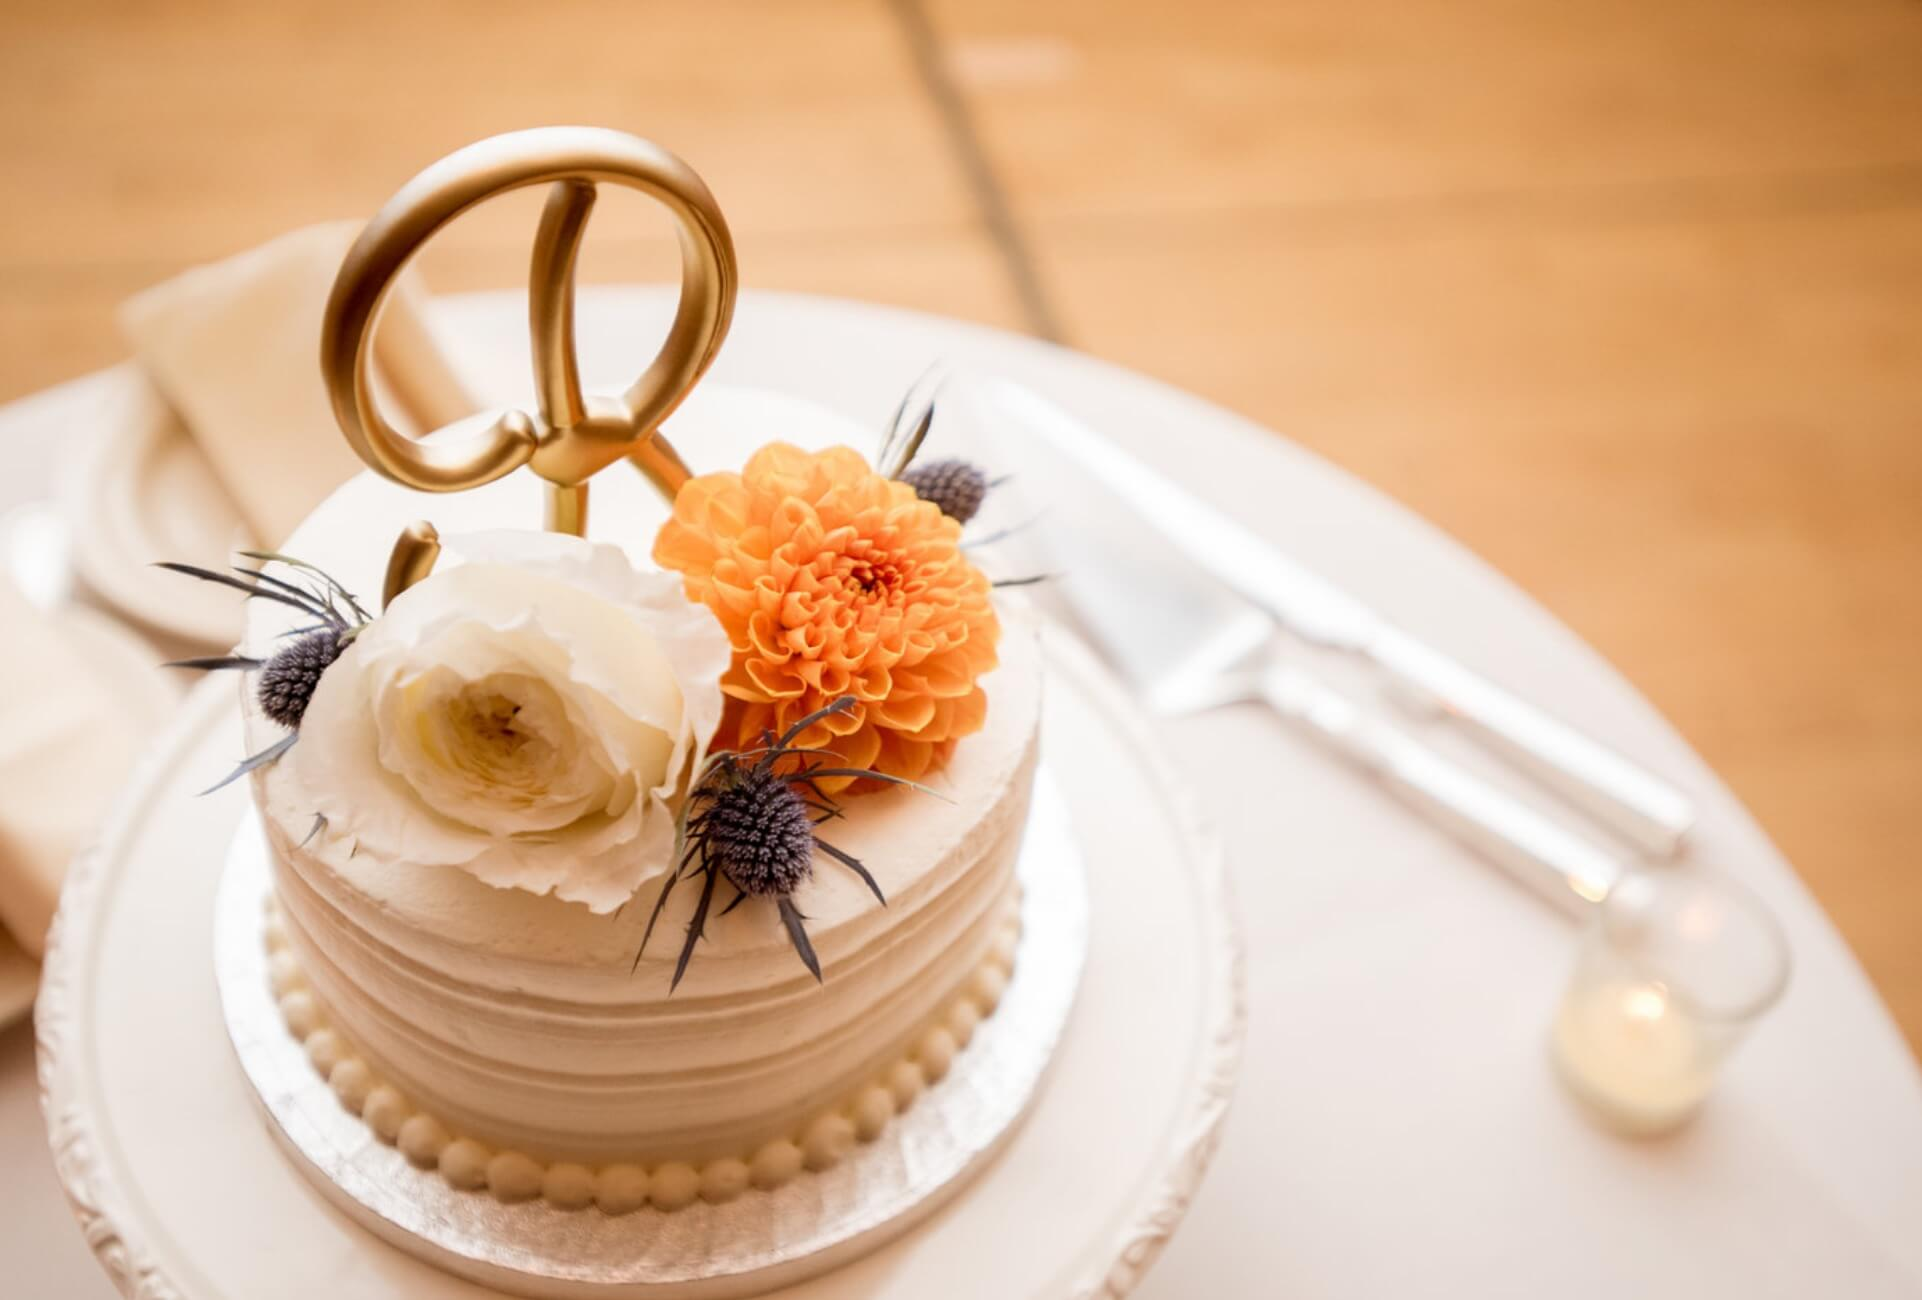 Customized wedding packages at The Fluted Mushroom